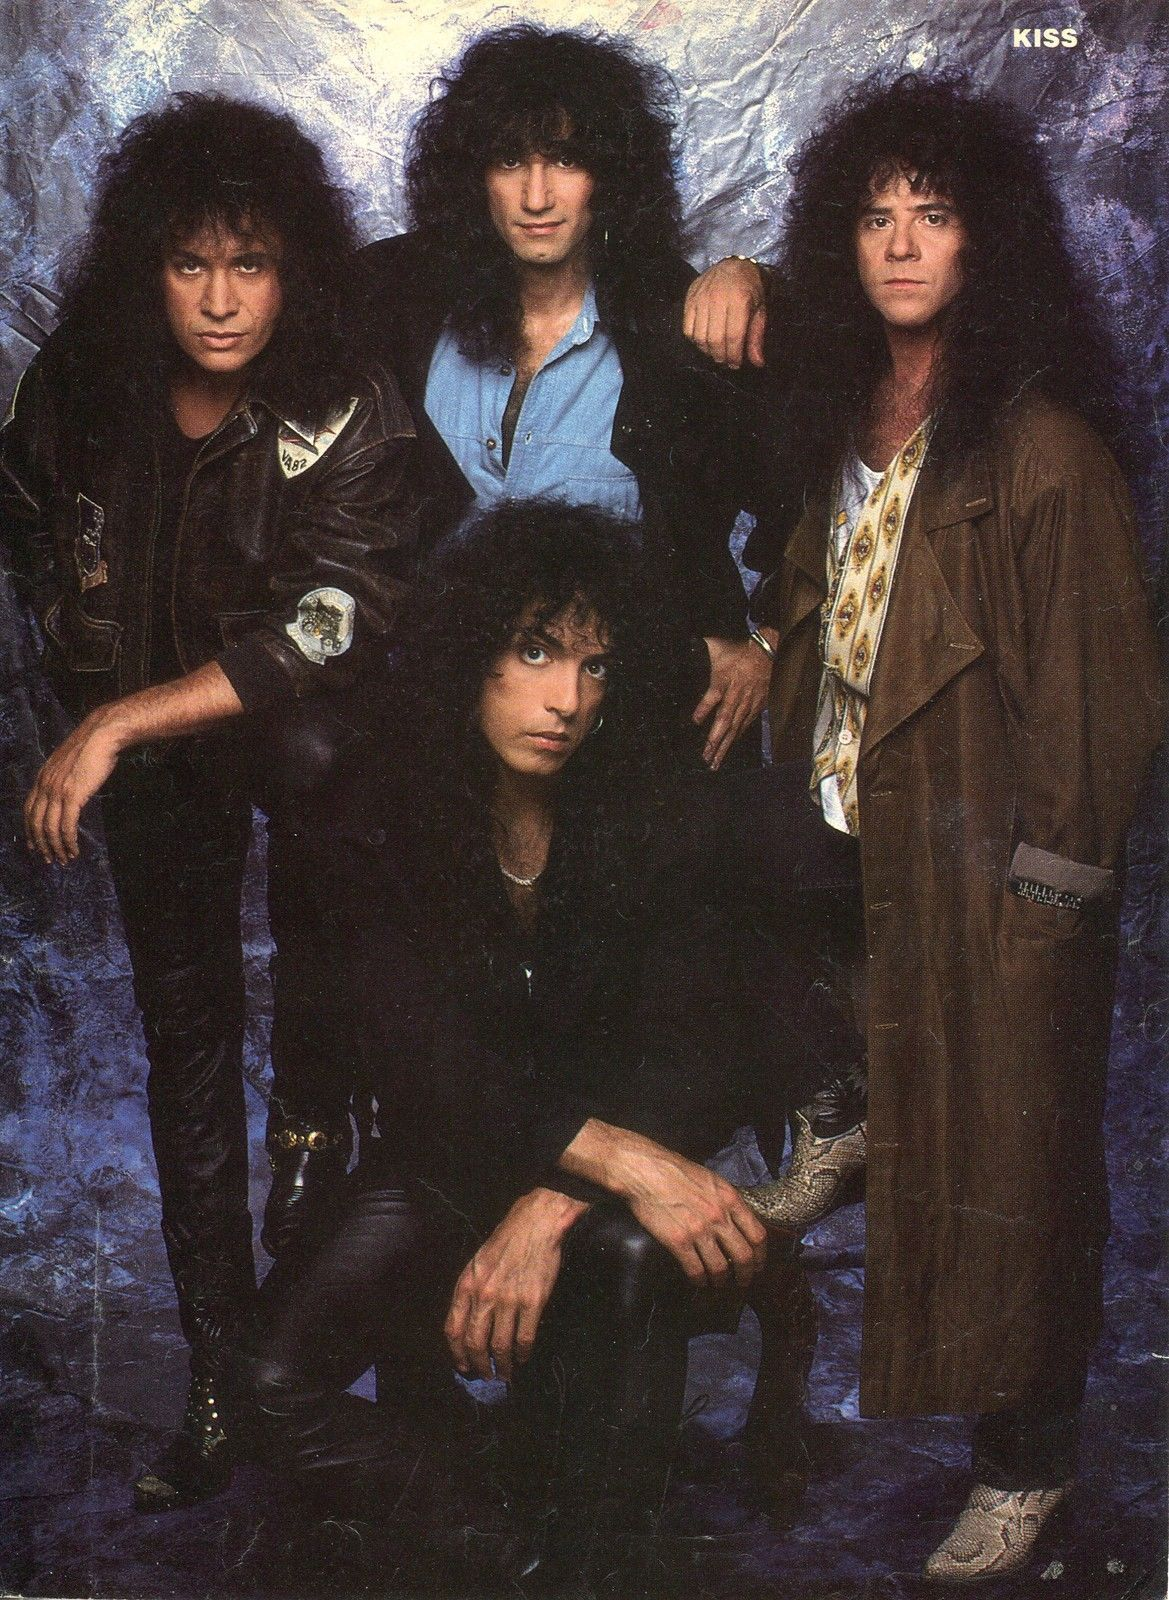 Kiss Pinup clipping 80's Eric Carr Gene Simmons | eBay ...